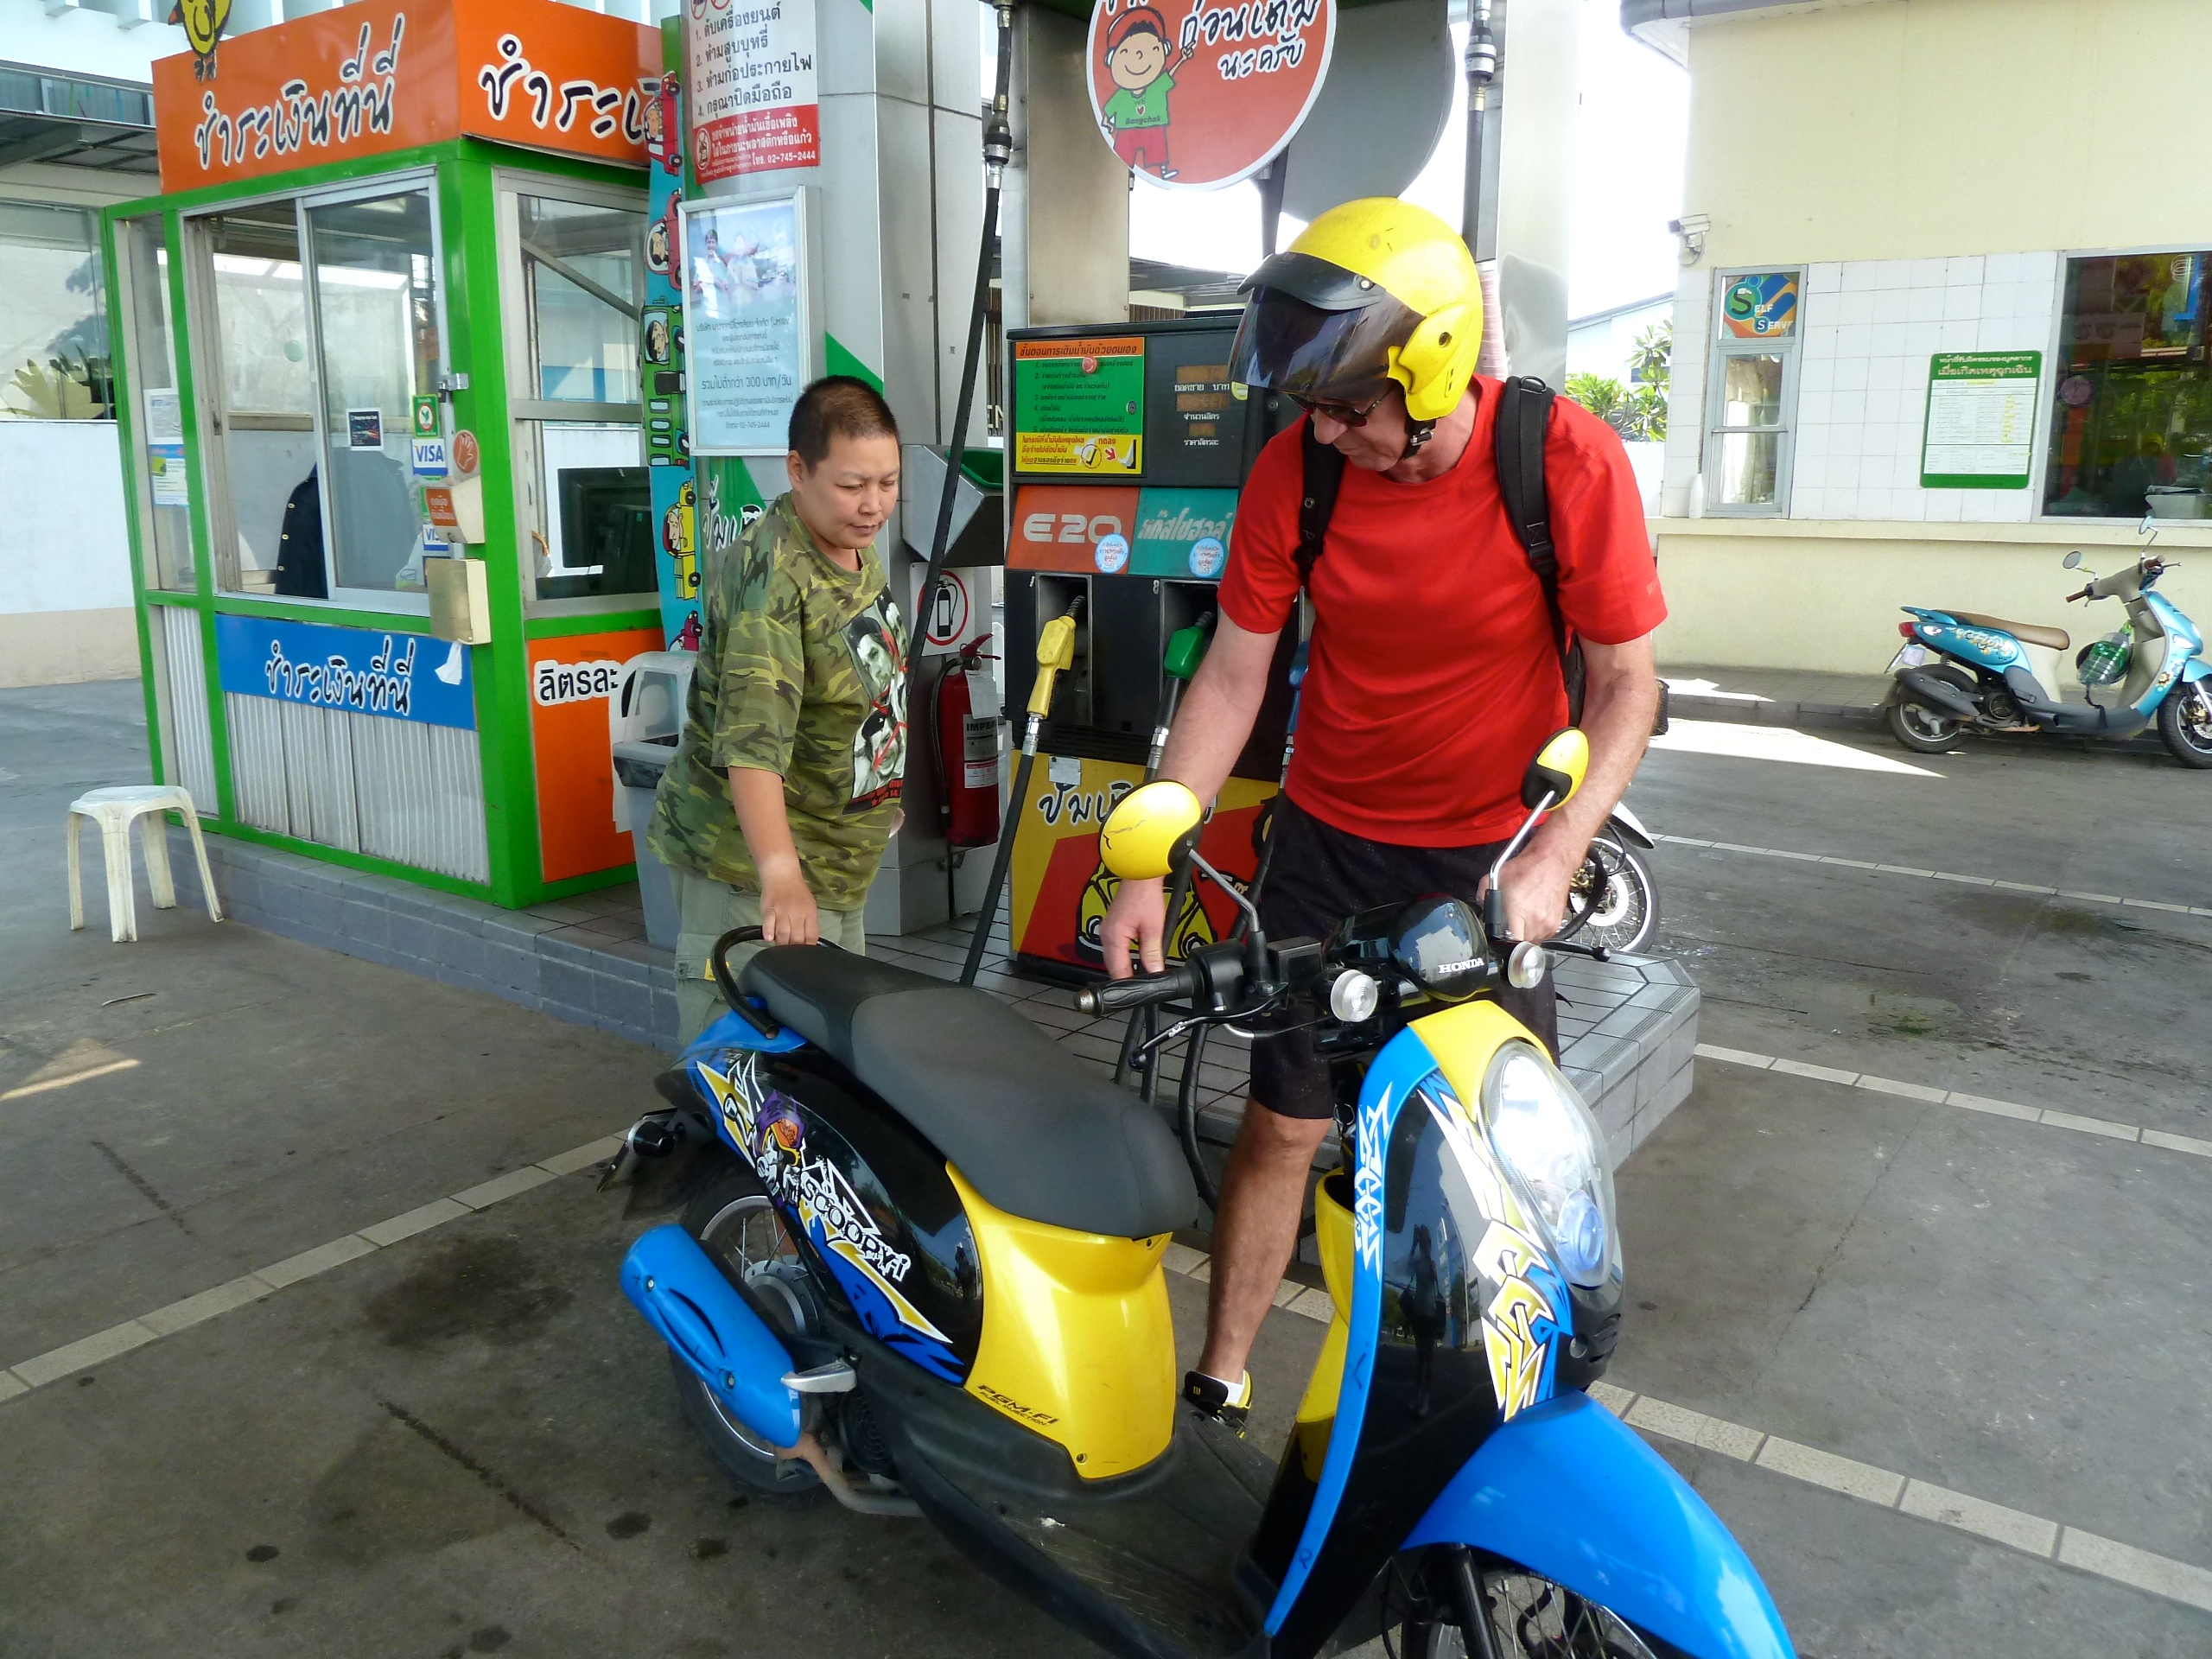 breakpoint-travel-guides-chiang-mai-thailand-motorcycle-and-attendant-at-gas-station-teri-church